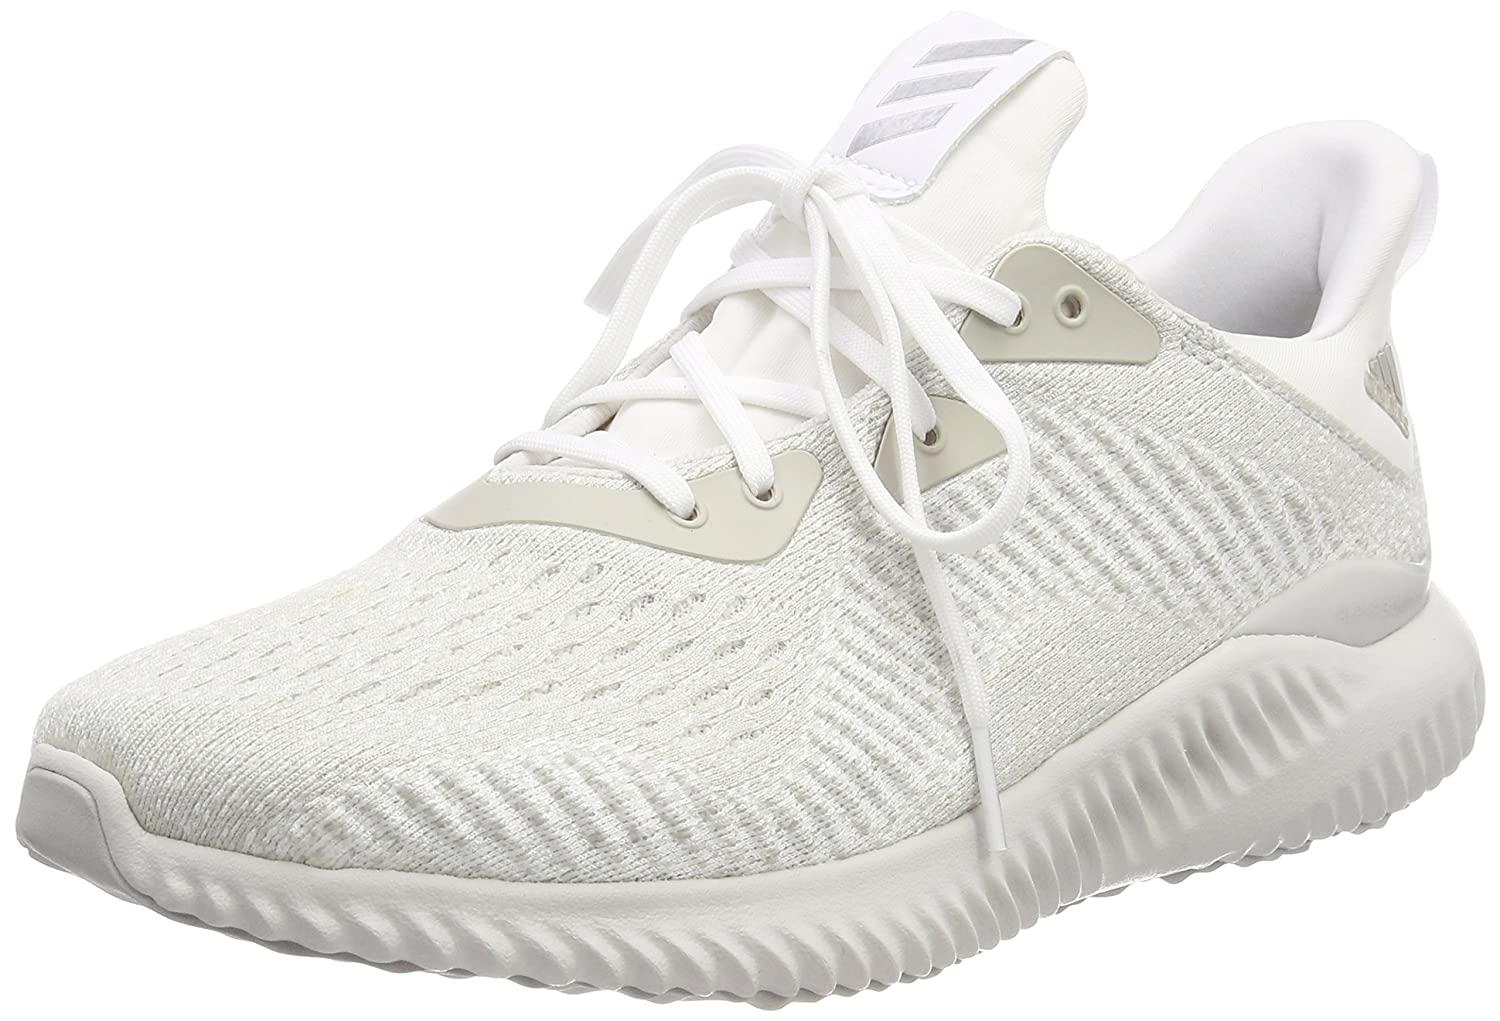 innovative design d50e7 e0cee Amazon.com  adidas AlphaBounce EM Mens Running Shoes - White-UK 9  Road  Running